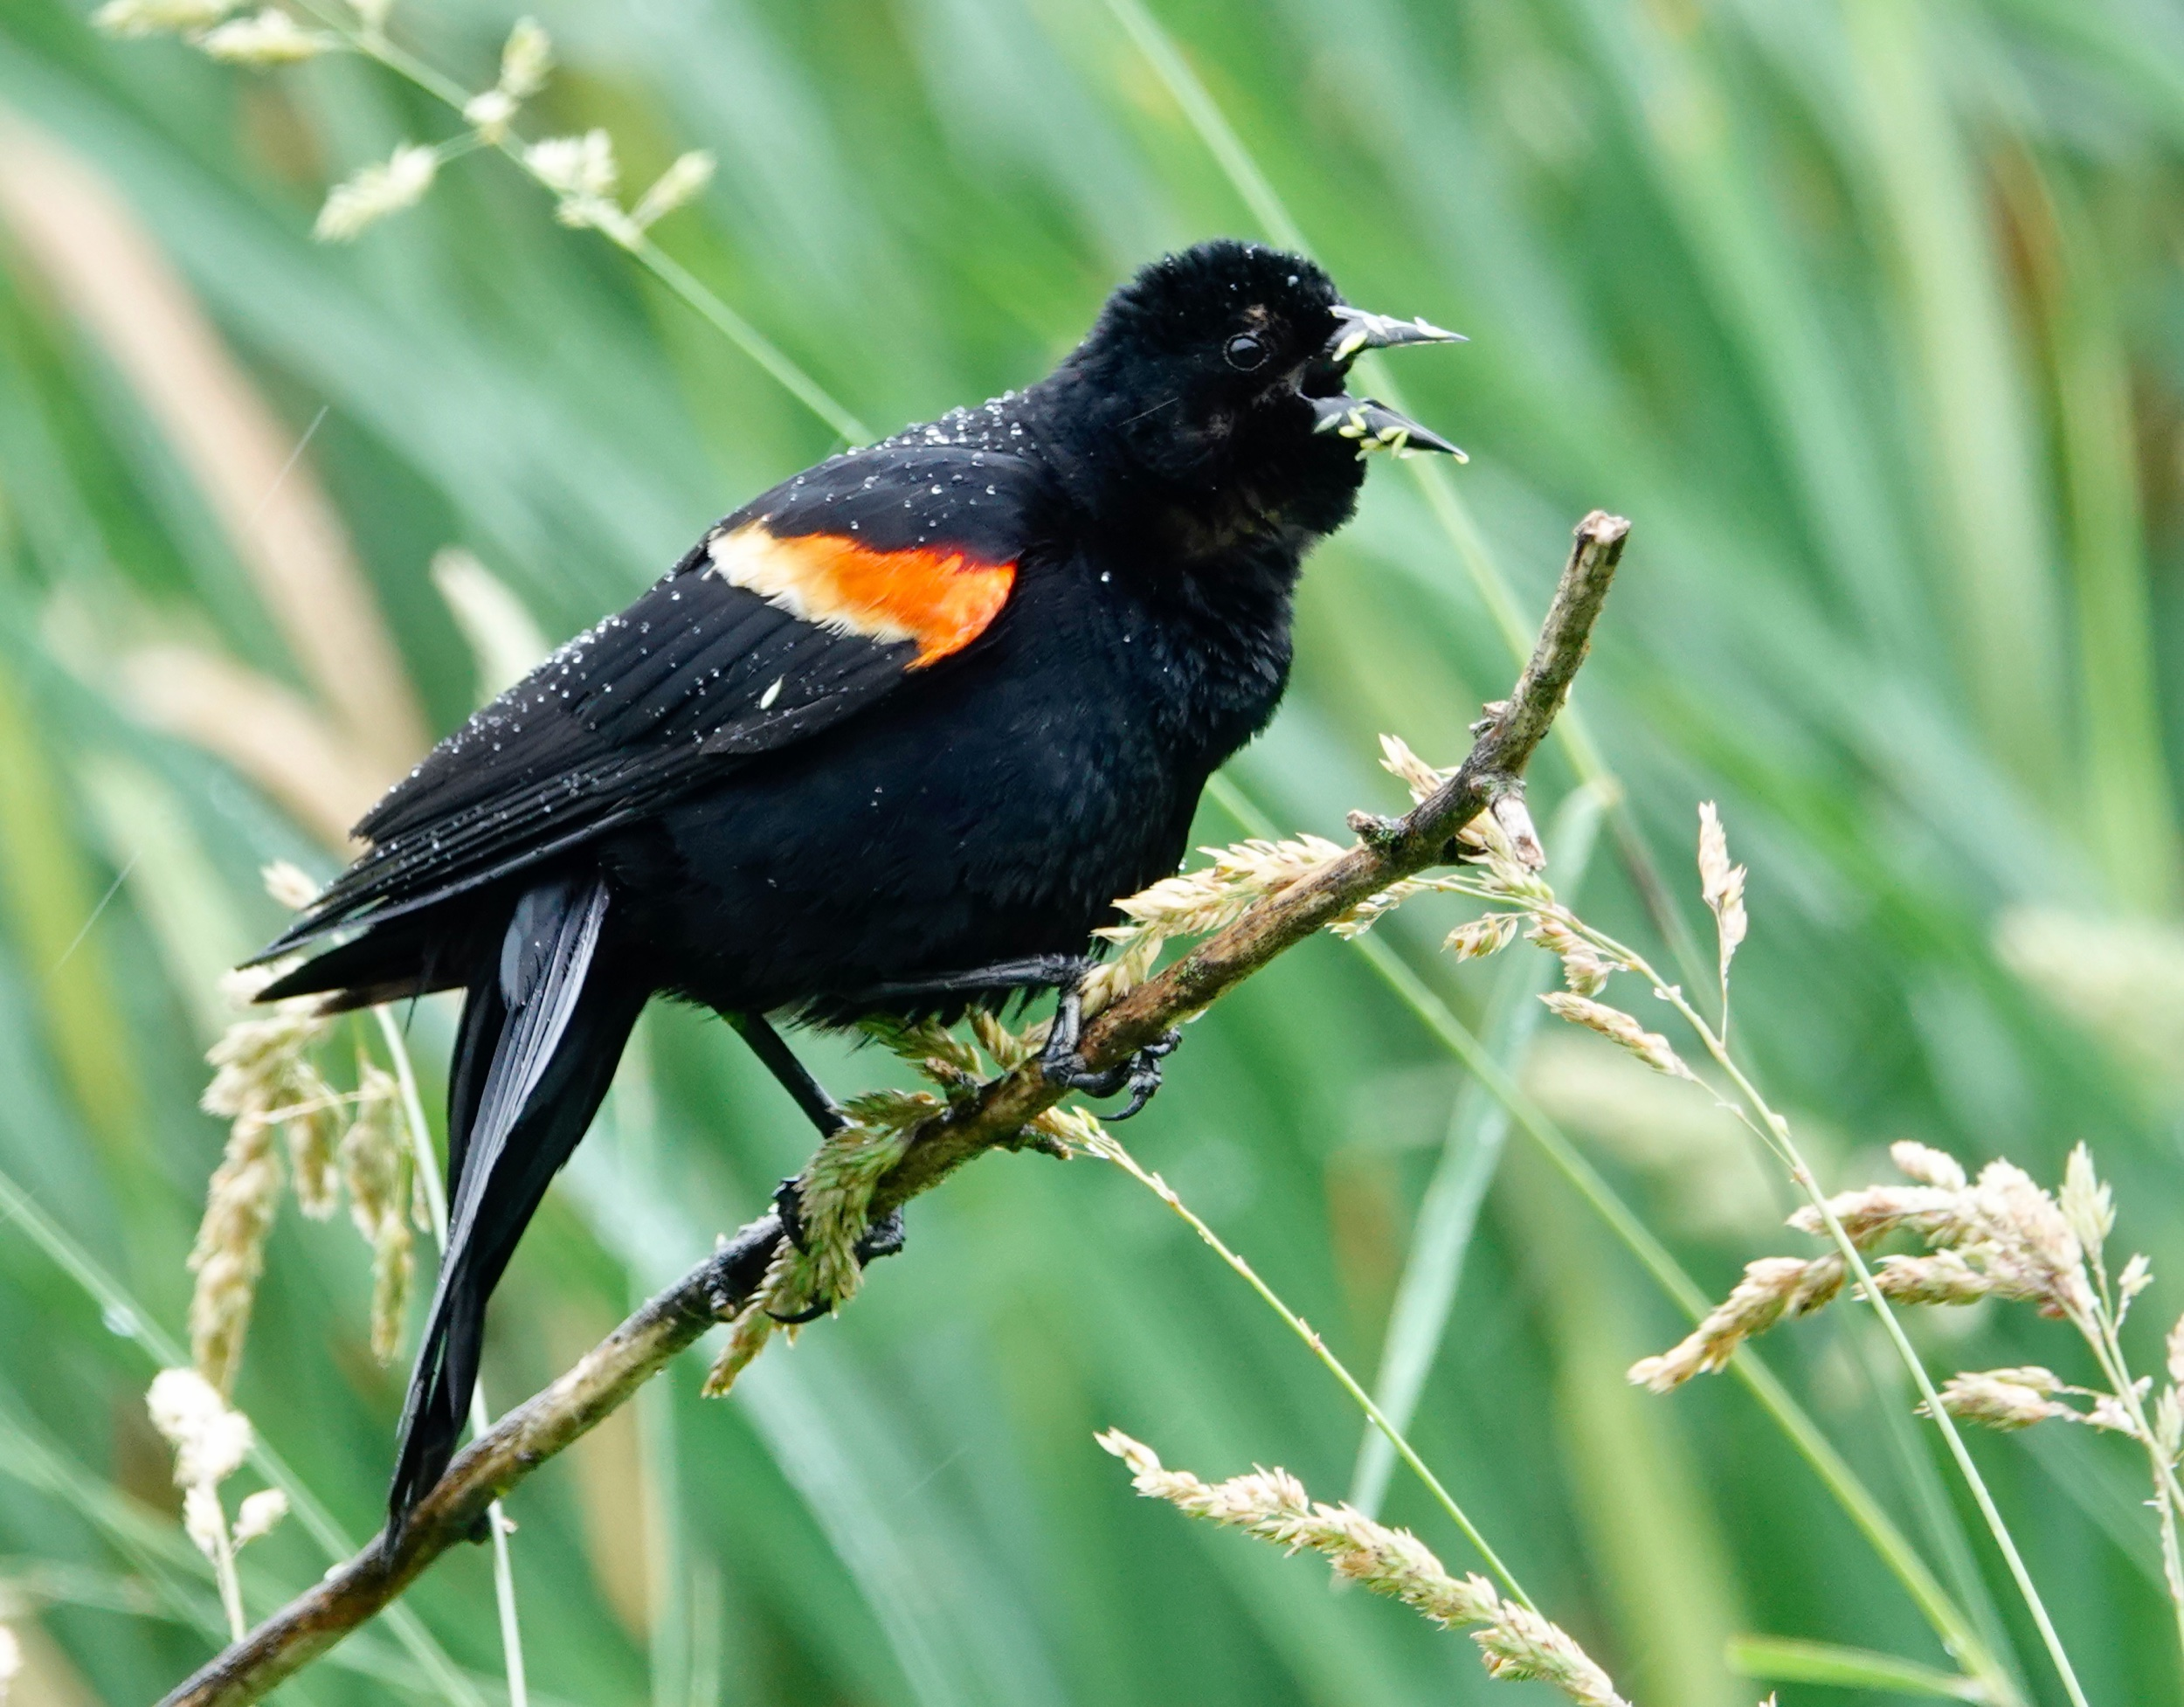 A red-winged blackbird is a feisty fellow, more than willing to attack a larger bird. This one was taking a lunch break from being feisty. Al Batt/Albert Lea Tribune